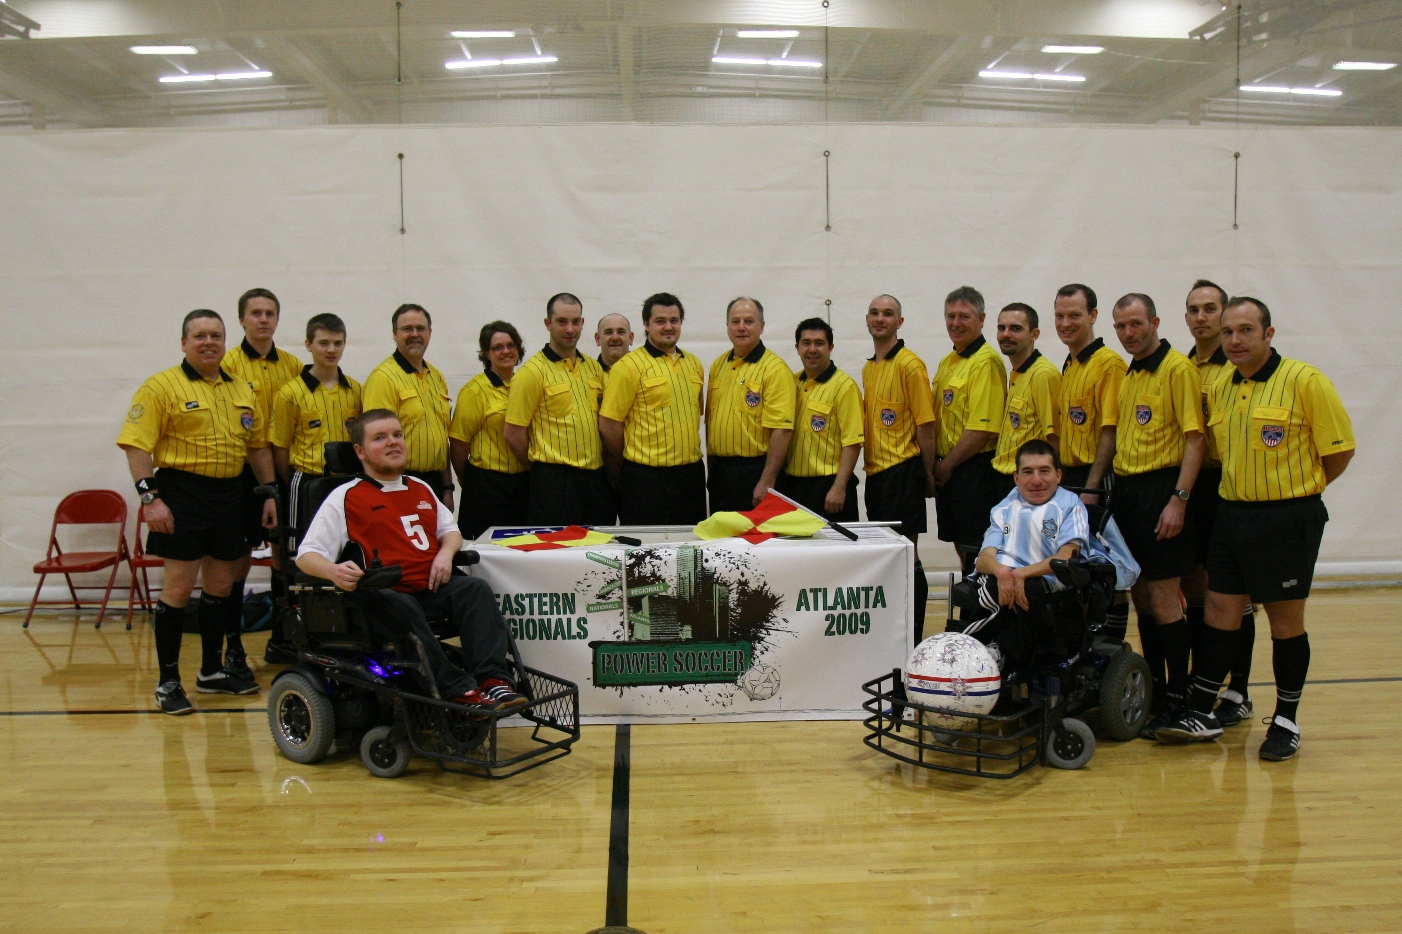 International Referees work the 2009 USPSA Eastern Regional Championships